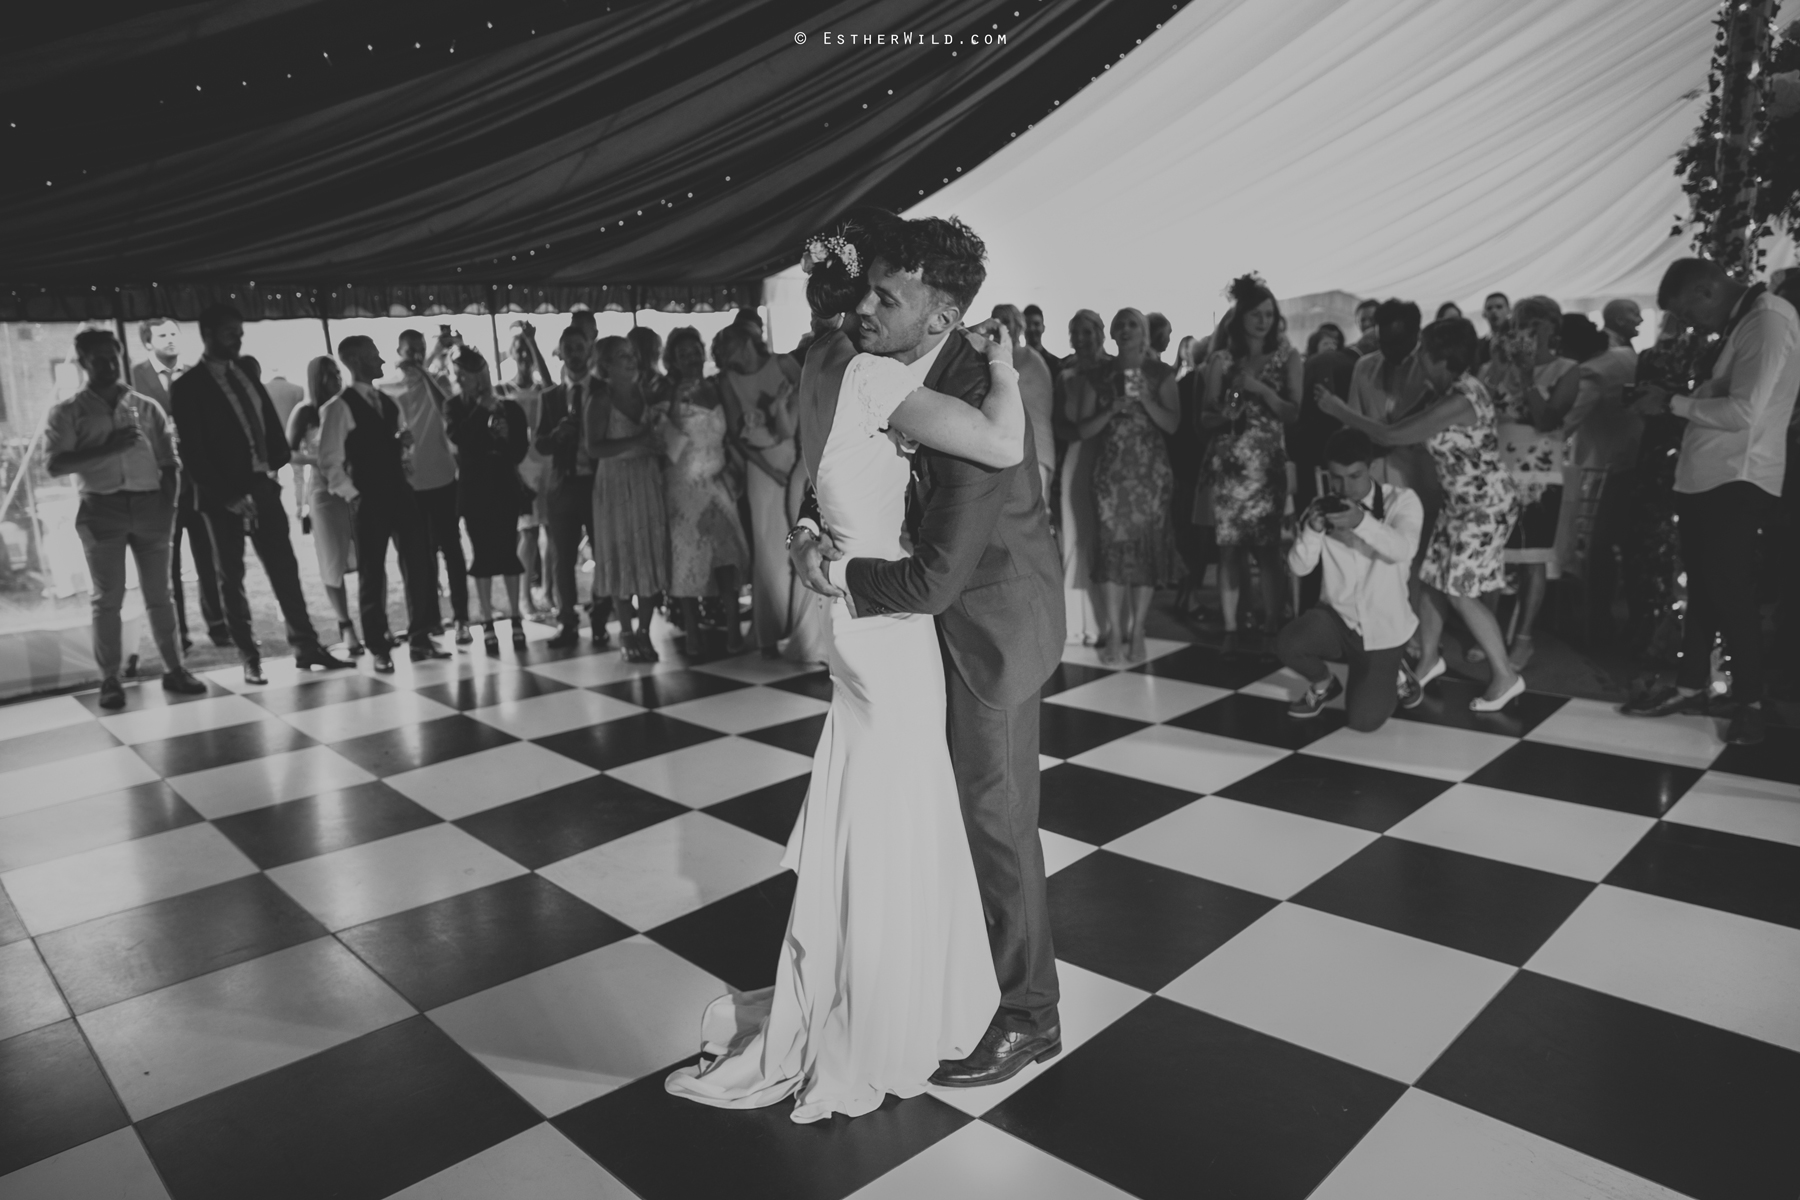 Wootton_Wedding_Copyright_Esther_Wild_Photographer_IMG_3227.jpg